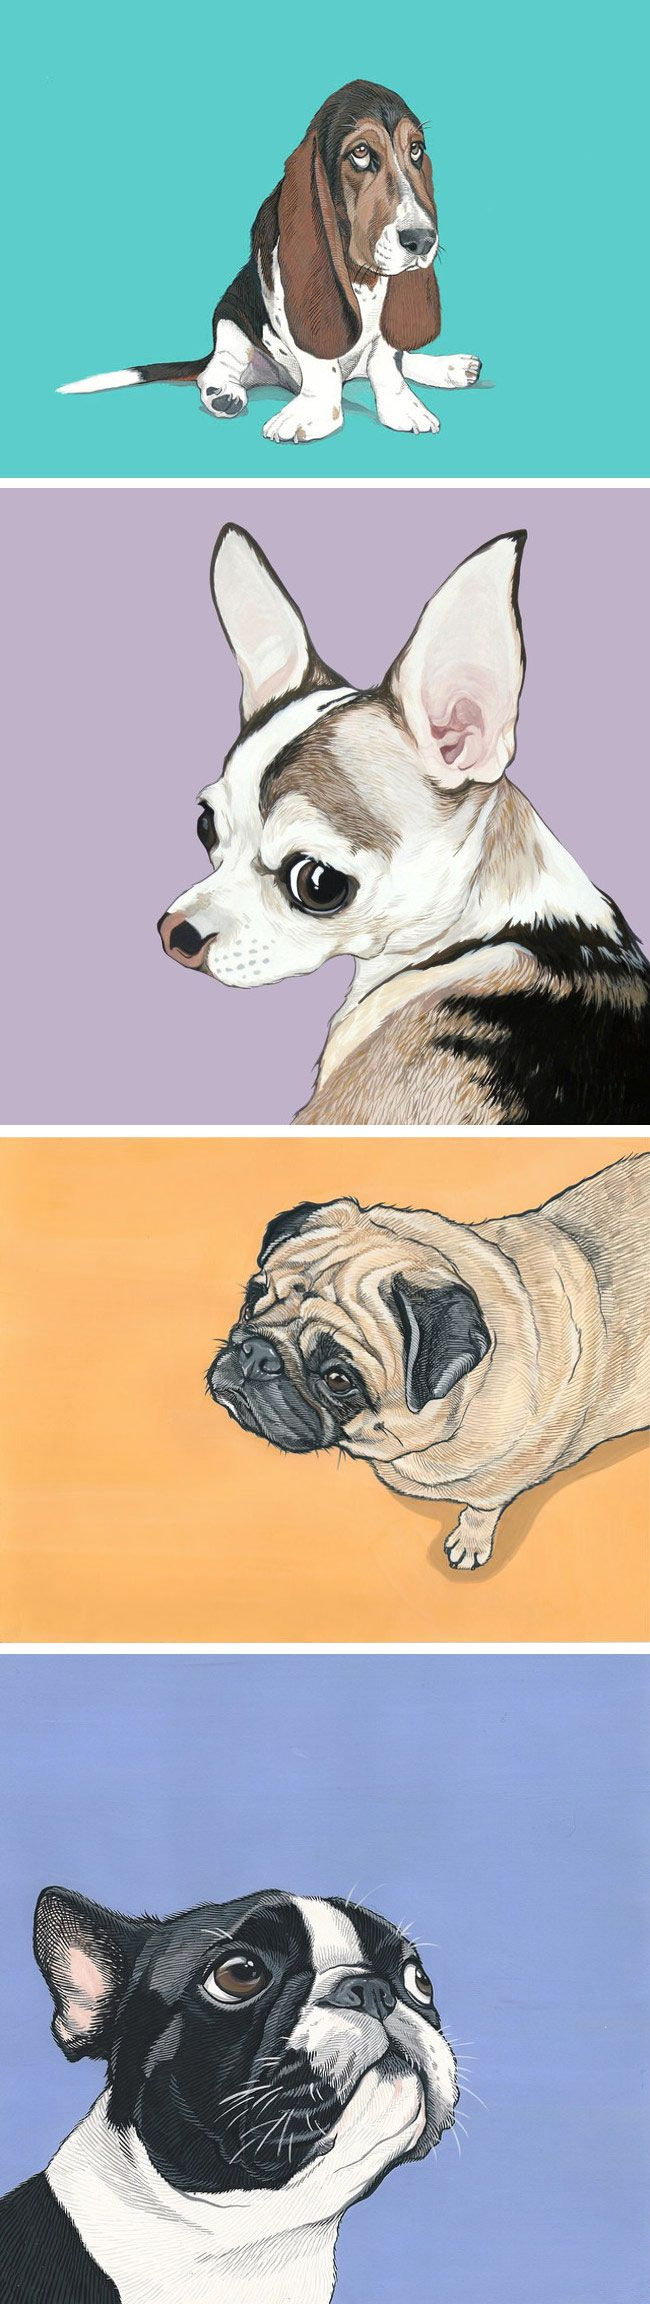 Custom pop-art style pet portraits by Manda Wolfe | The Pet Anthology